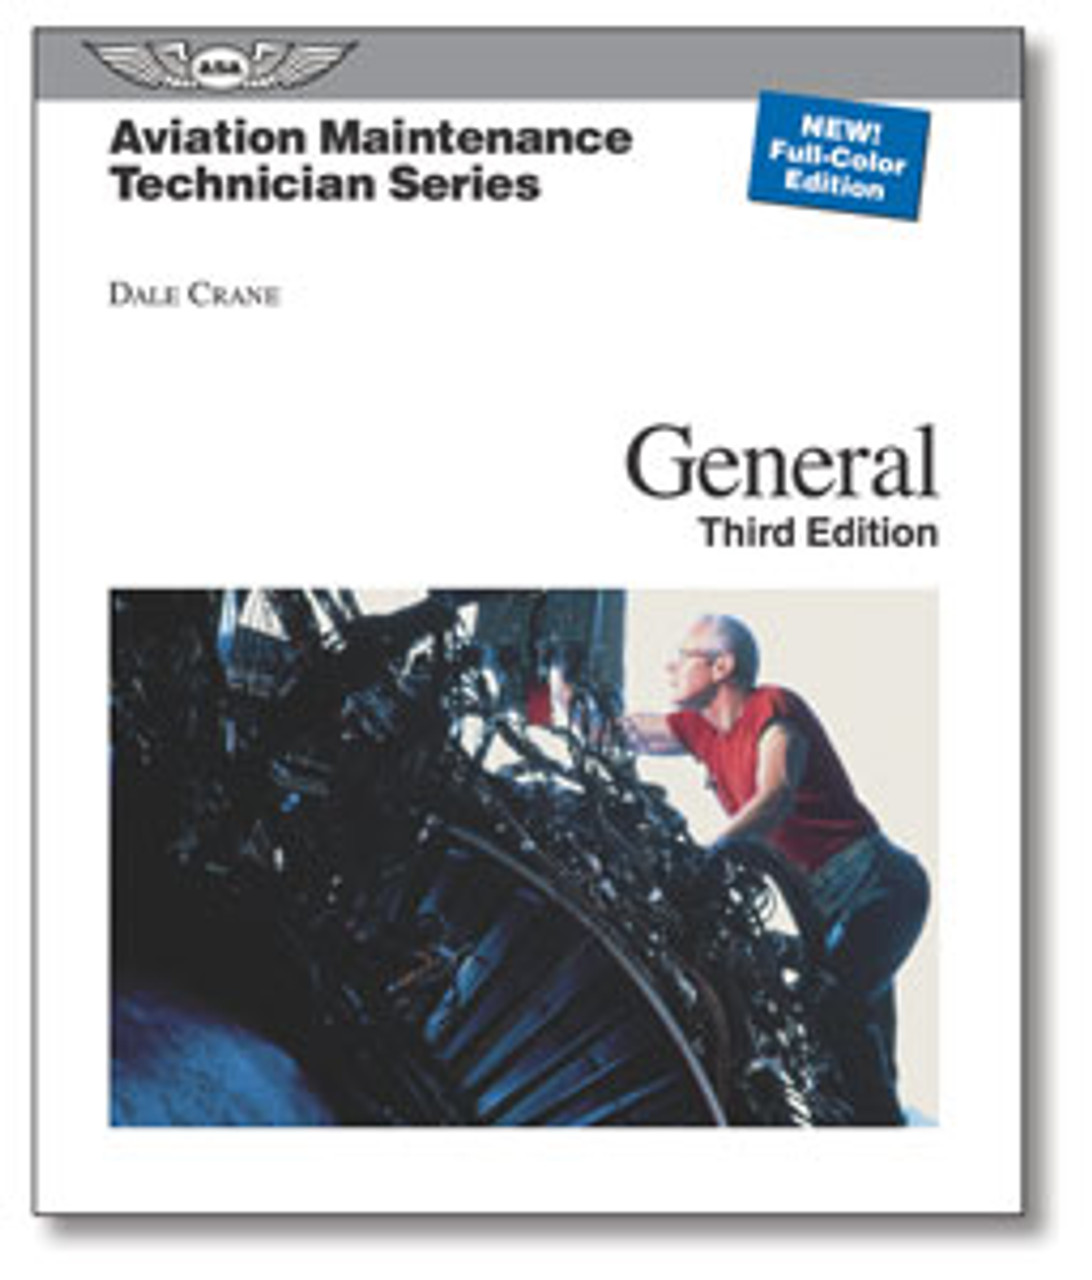 Aviation Maintenance Technician Series: General